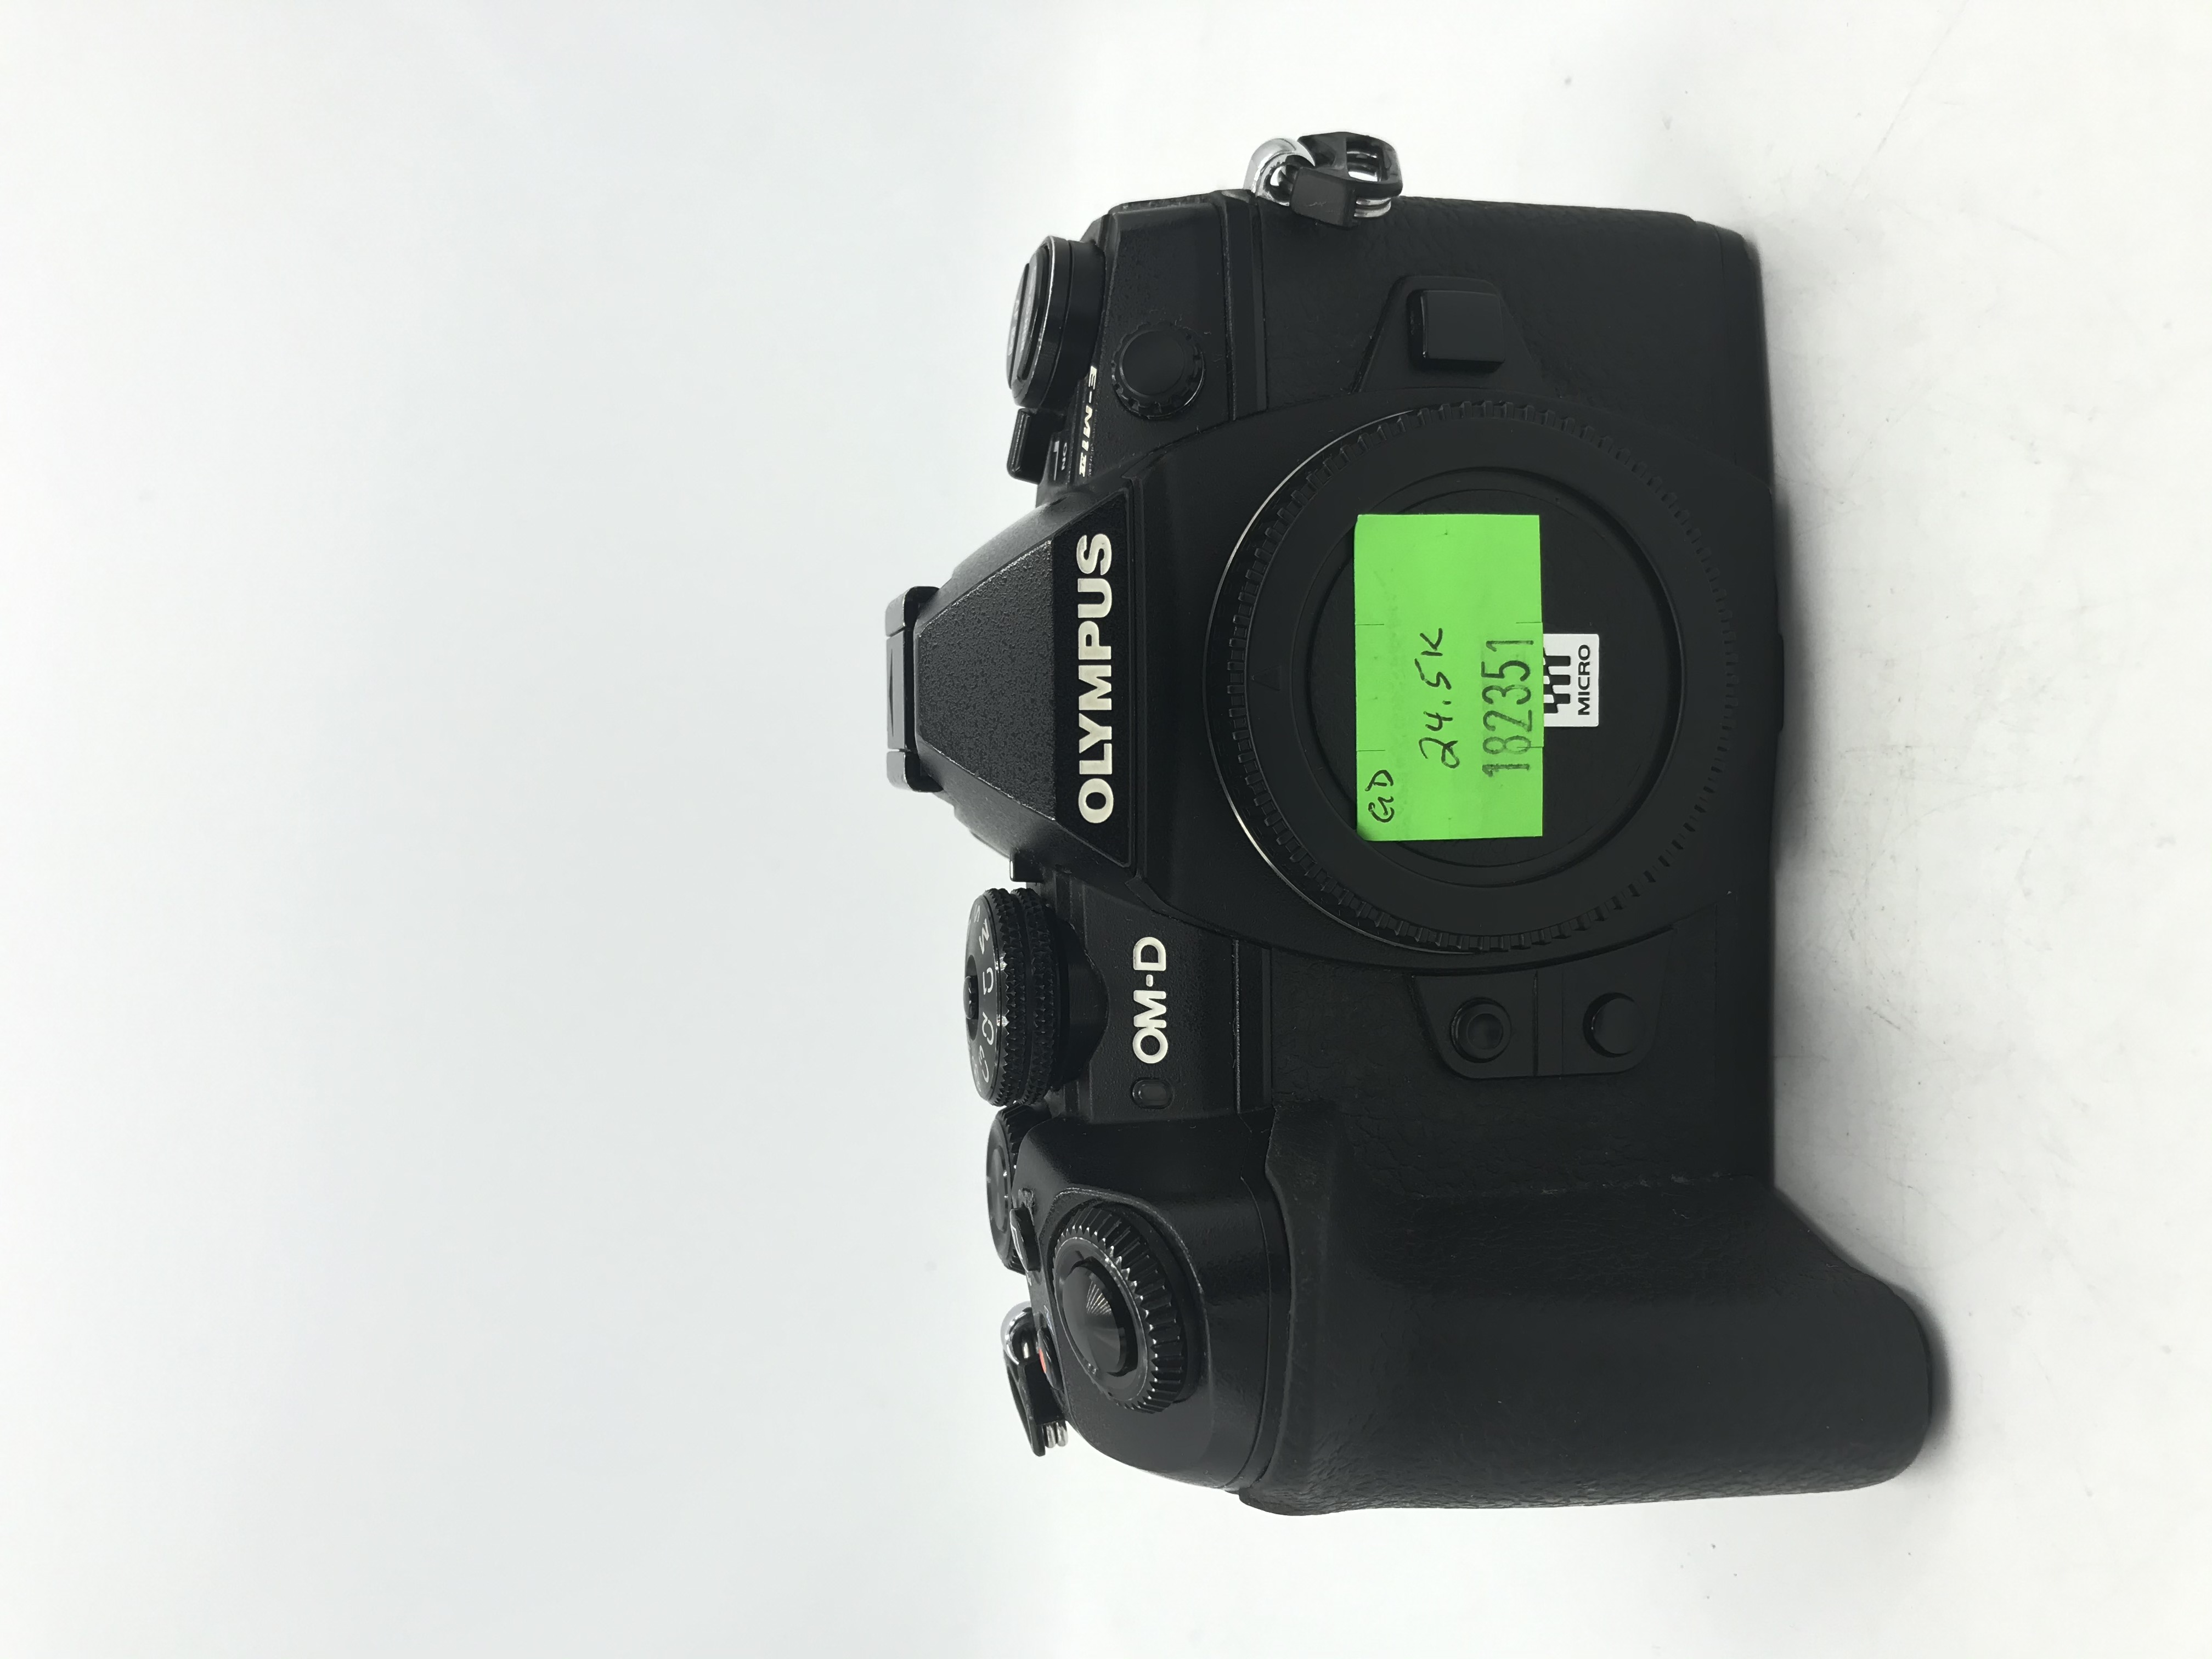 USED Olympus OM-D E-M1 Mark II Mirrorless  Camera (Body Only)